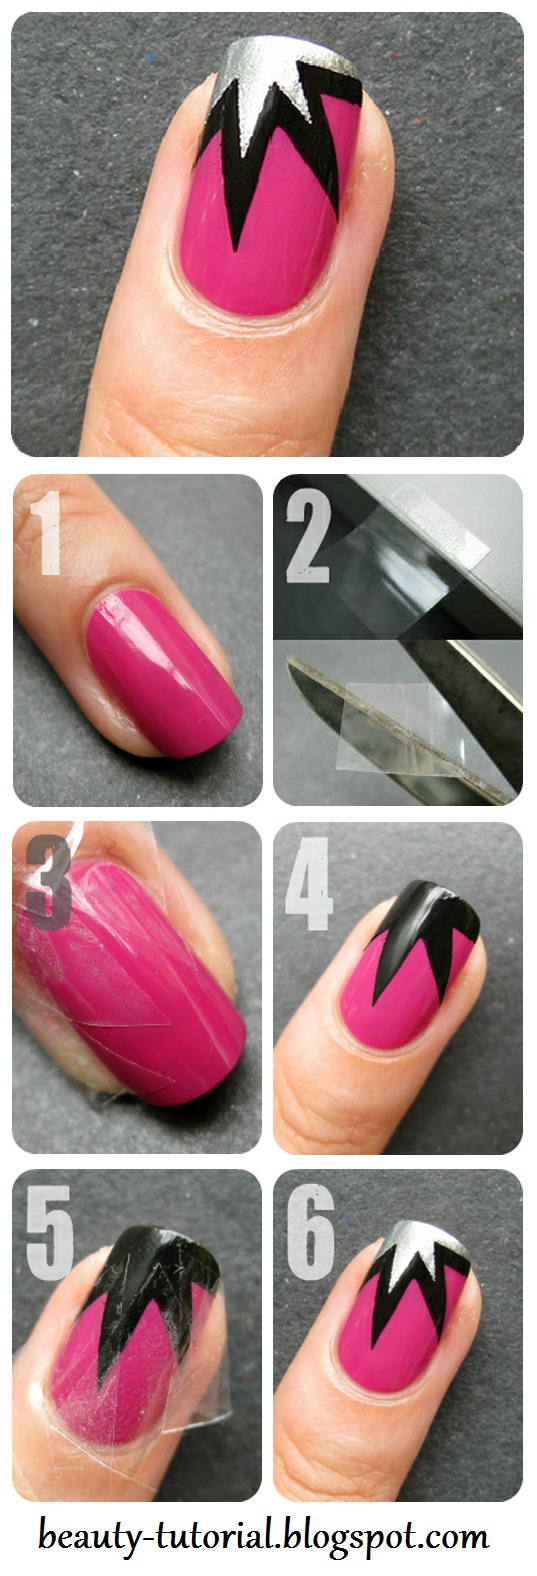 Exceptional Wonderful Cute Easy Diy Nail Designs 18 Became Inspiration Article